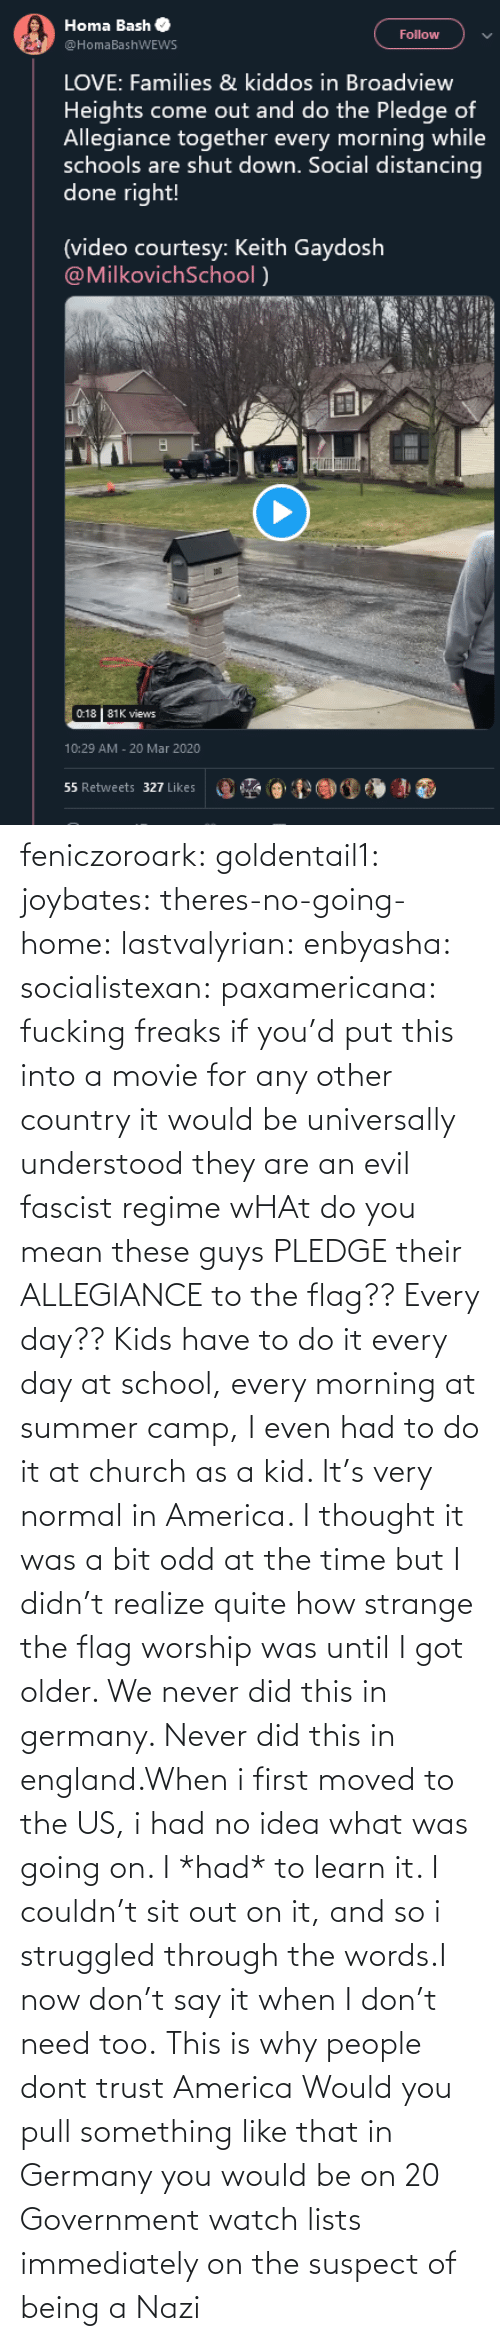 Until I: feniczoroark:  goldentail1:  joybates:  theres-no-going-home:  lastvalyrian:  enbyasha:  socialistexan:  paxamericana: fucking freaks       if you'd put this into a movie for any other country it would be universally understood they are an evil fascist regime    wHAt do you mean these guys PLEDGE their ALLEGIANCE to the flag?? Every day??   Kids have to do it every day at school, every morning at summer camp, I even had to do it at church as a kid. It's very normal in America. I thought it was a bit odd at the time but I didn't realize quite how strange the flag worship was until I got older.    We never did this in germany. Never did this in england.When i first moved to the US, i had no idea what was going on. I *had* to learn it. I couldn't sit out on it, and so i struggled through the words.I now don't say it when I don't need too.   This is why people dont trust America    Would you pull something like that in Germany you would be on 20 Government watch lists immediately on the suspect of being a Nazi